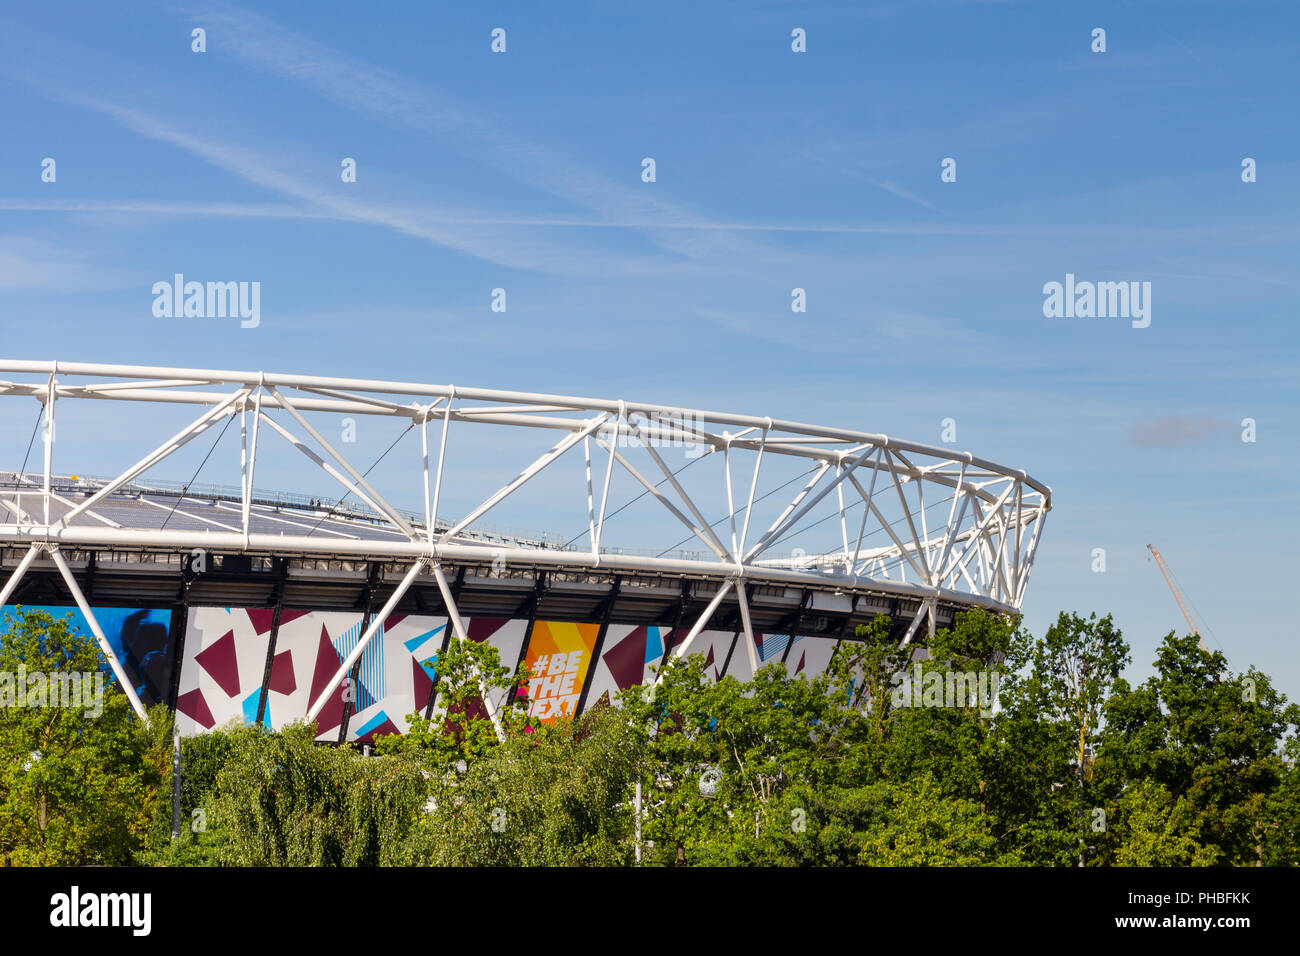 The Olympic Stadium in Queen Elizabeth Olympic Park, London, England.  The stadium is now home to West Ham United Football Cub. - Stock Image